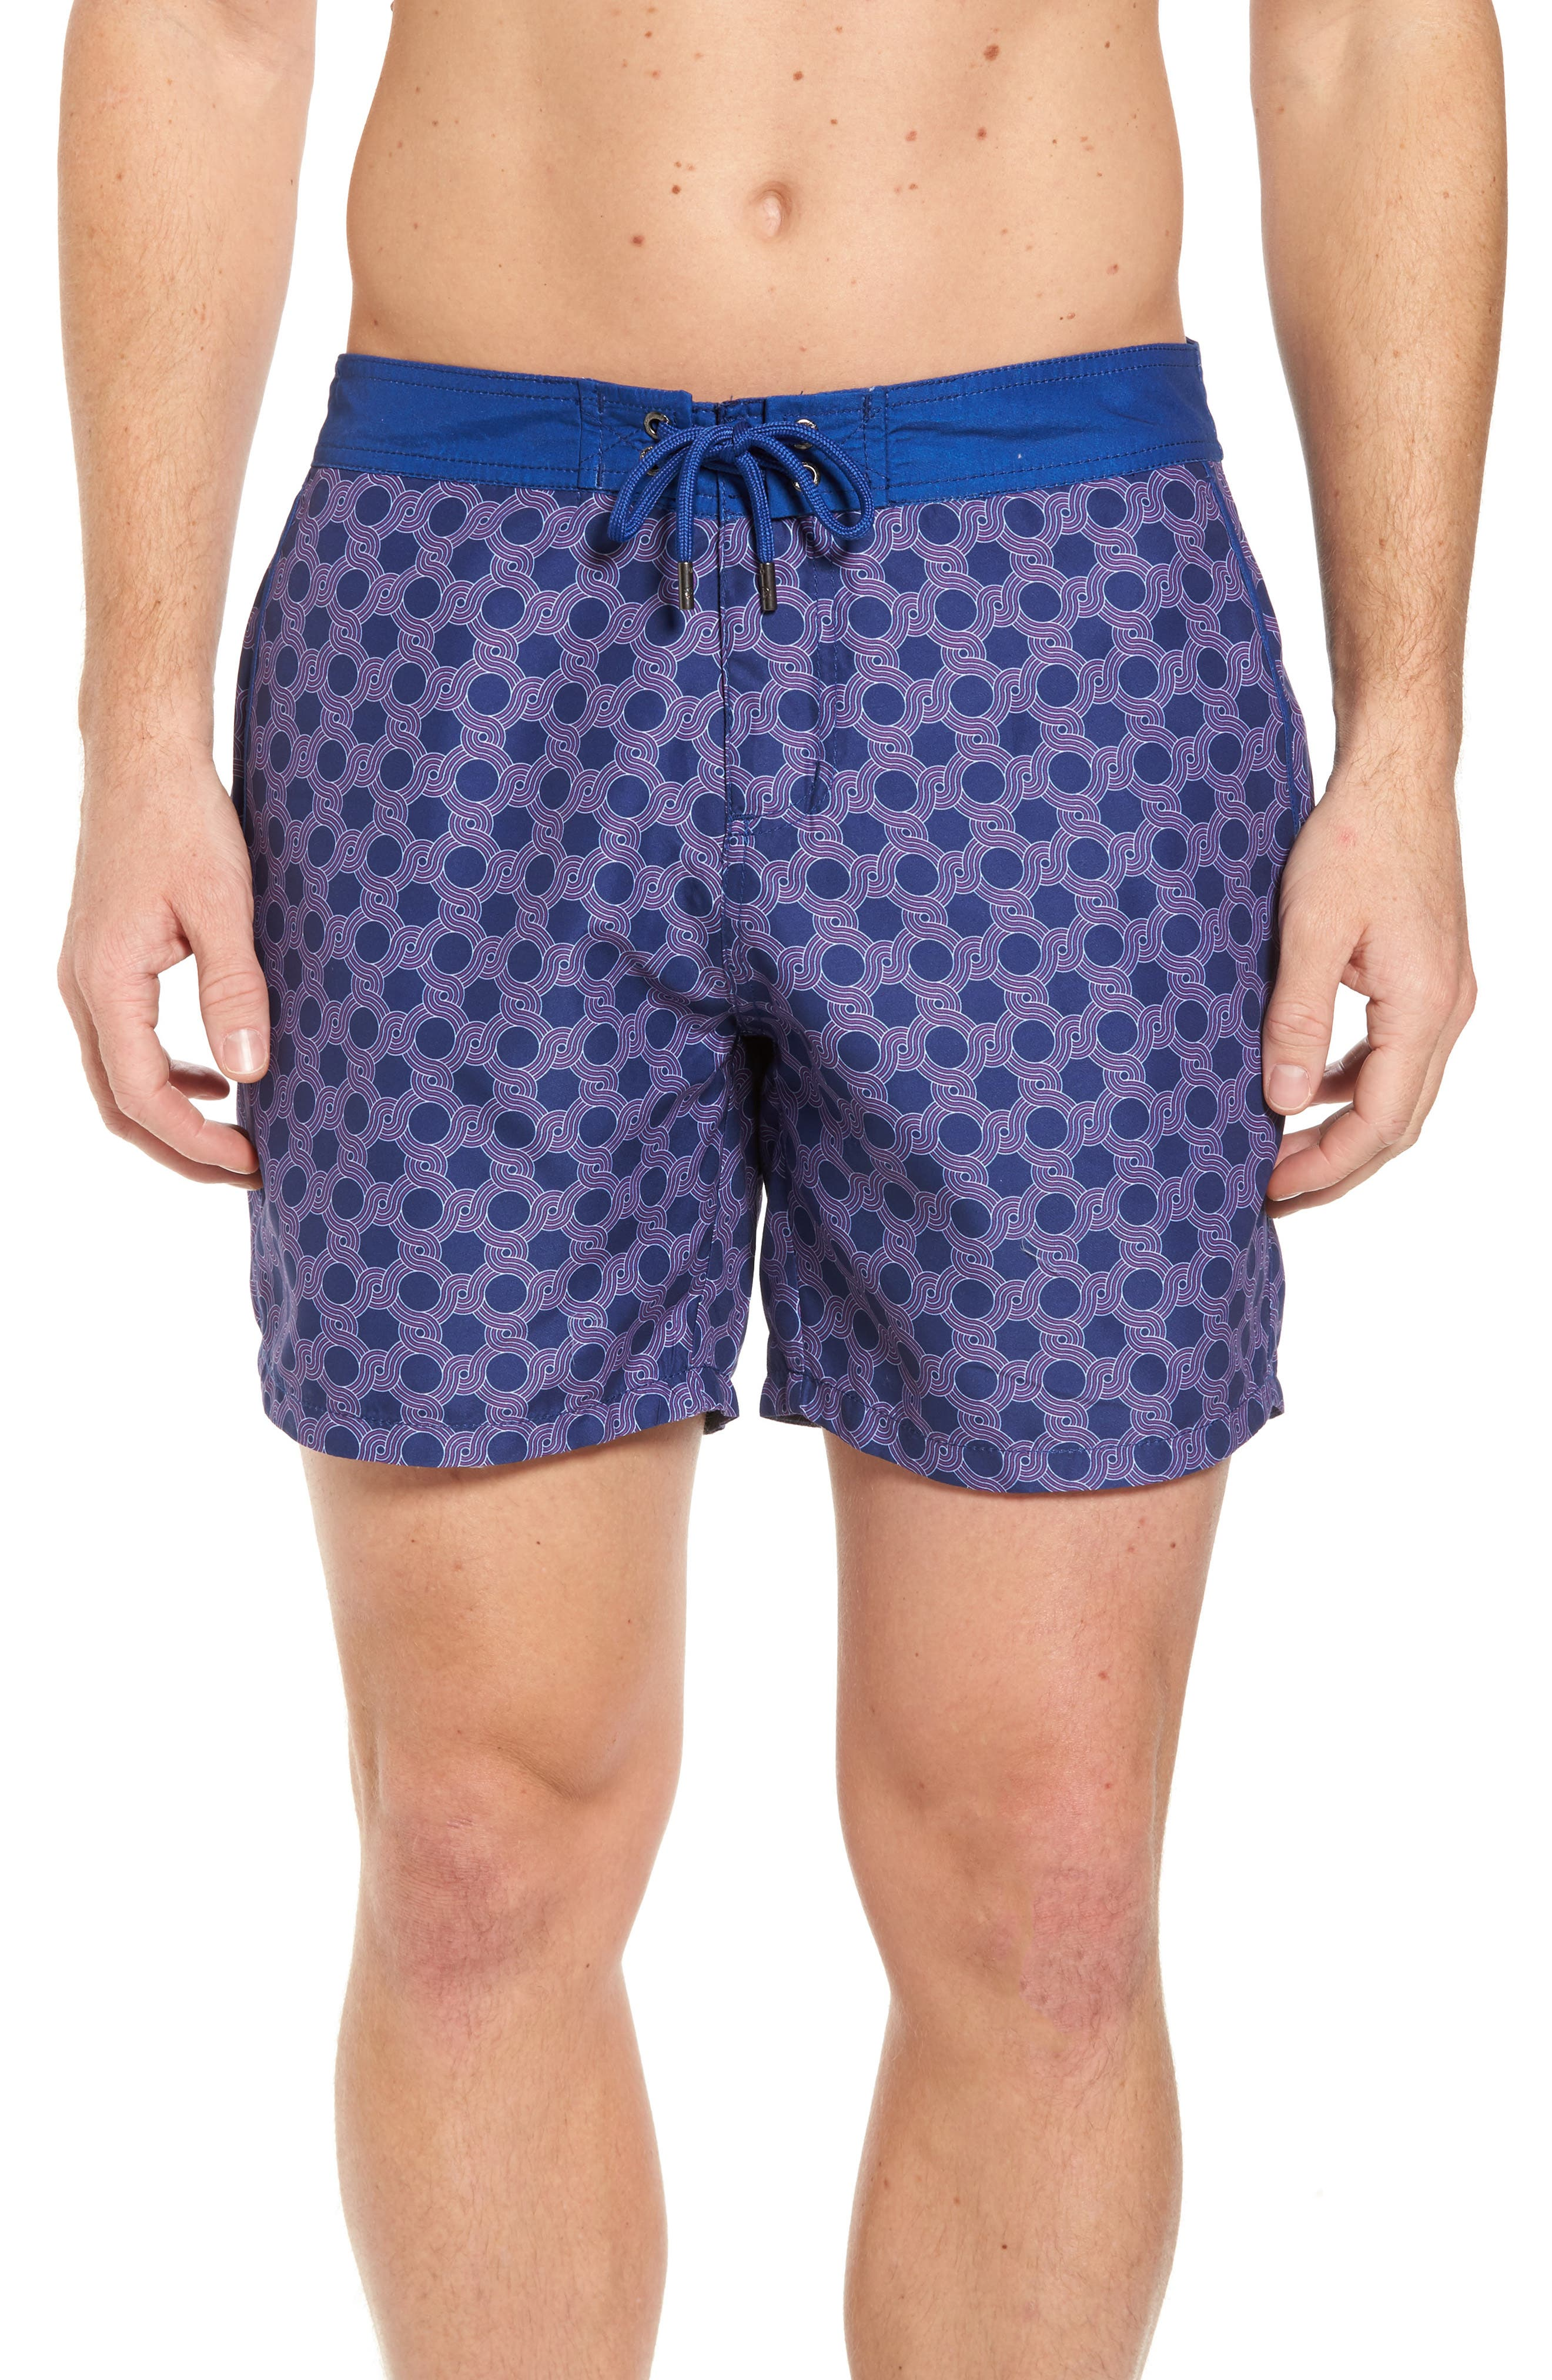 Mr. Swim Figure Eight Print Swim Trunks,                             Main thumbnail 1, color,                             Navy